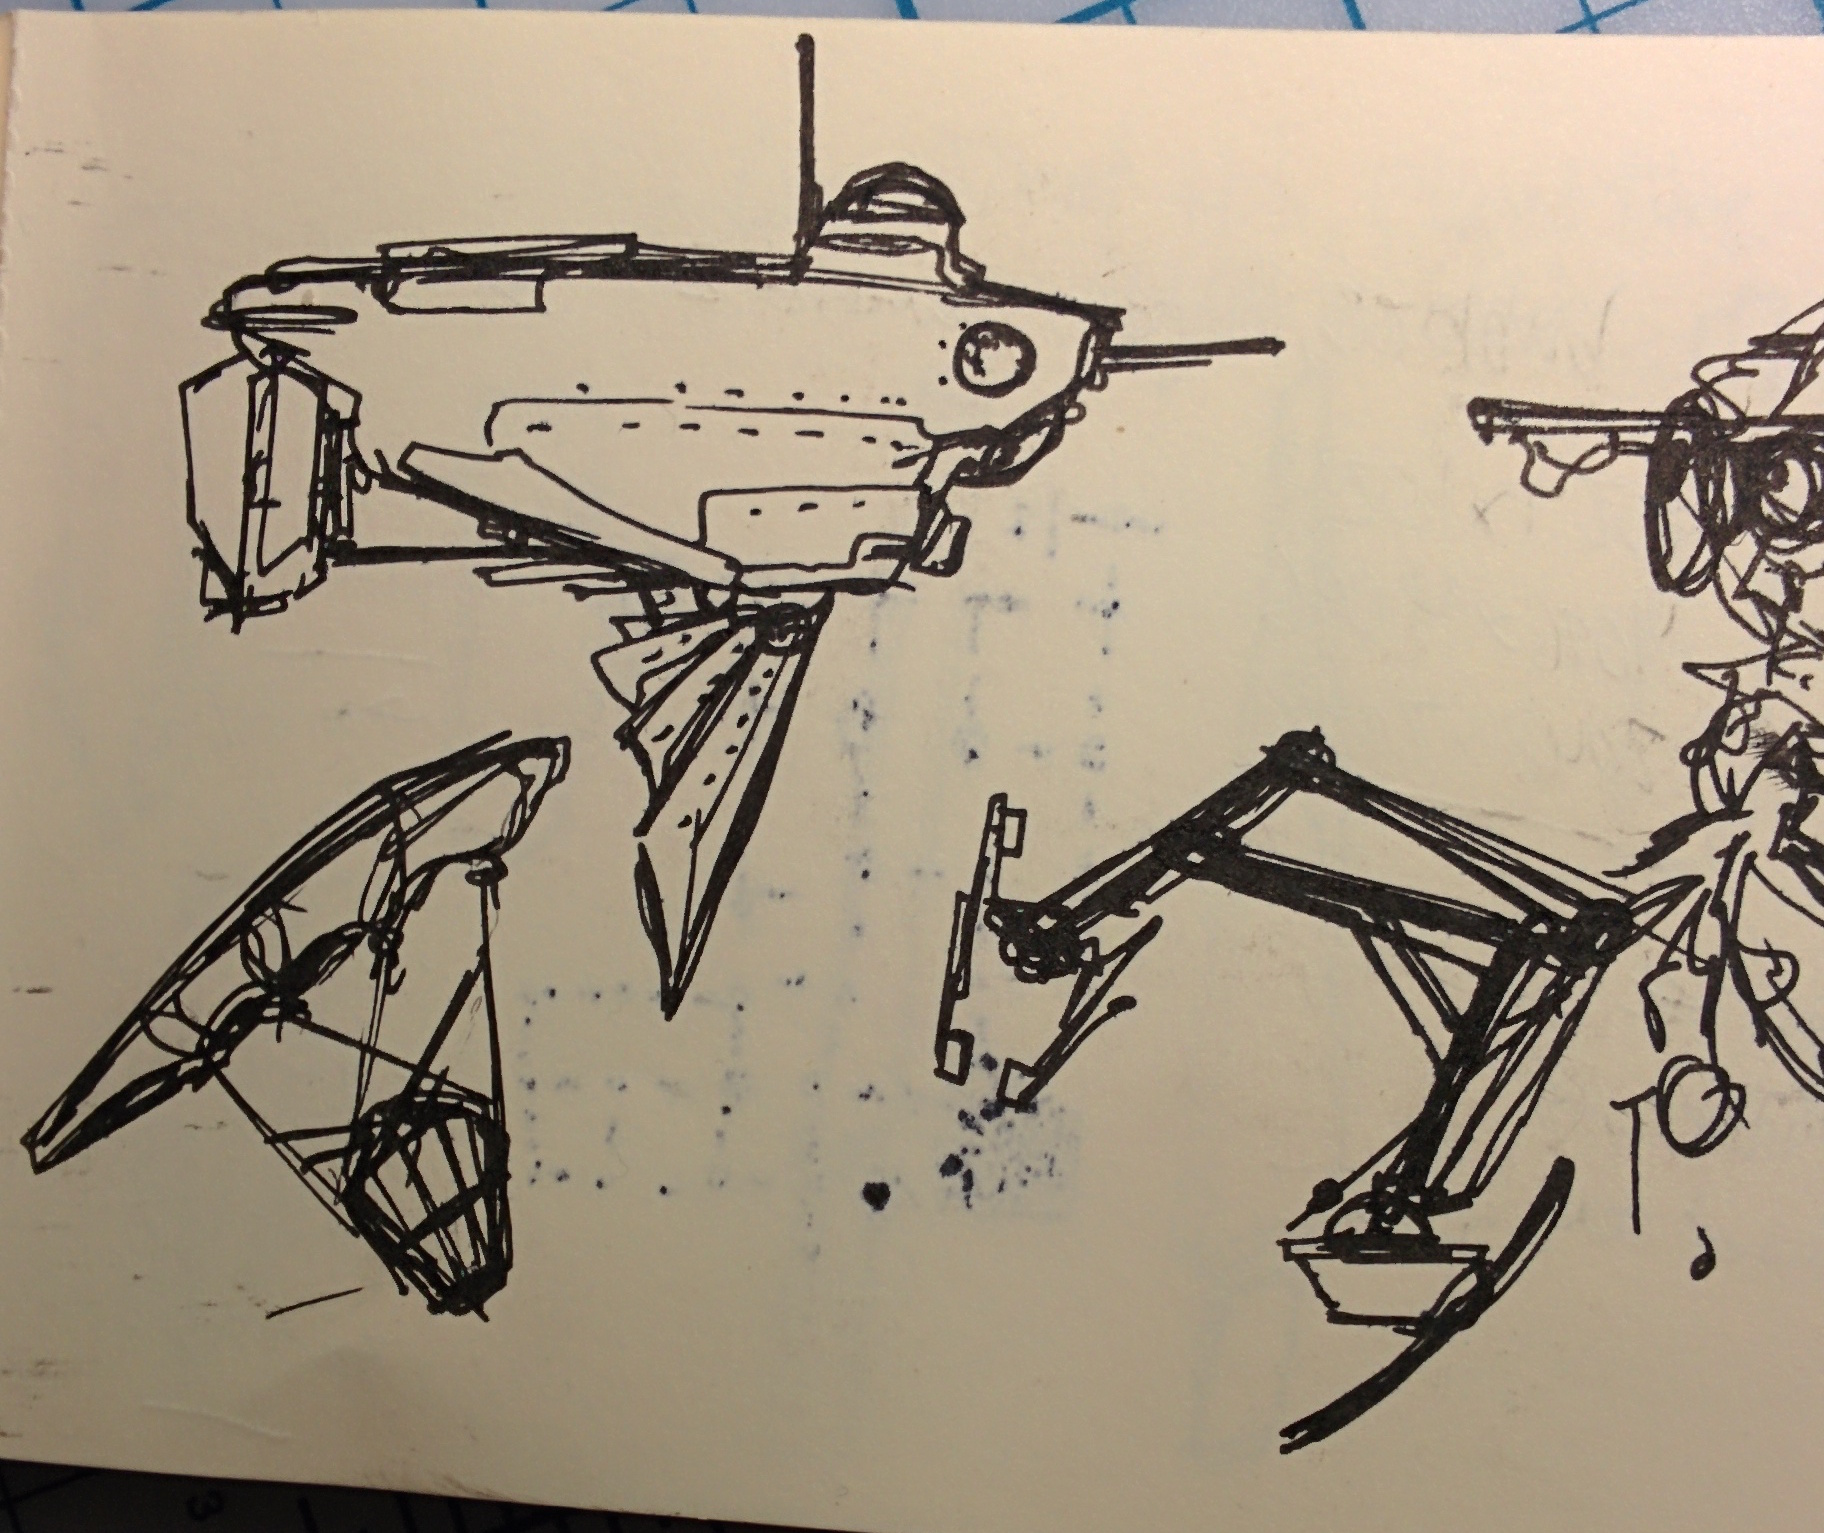 archaeologist sub sketch 2 #innerspace